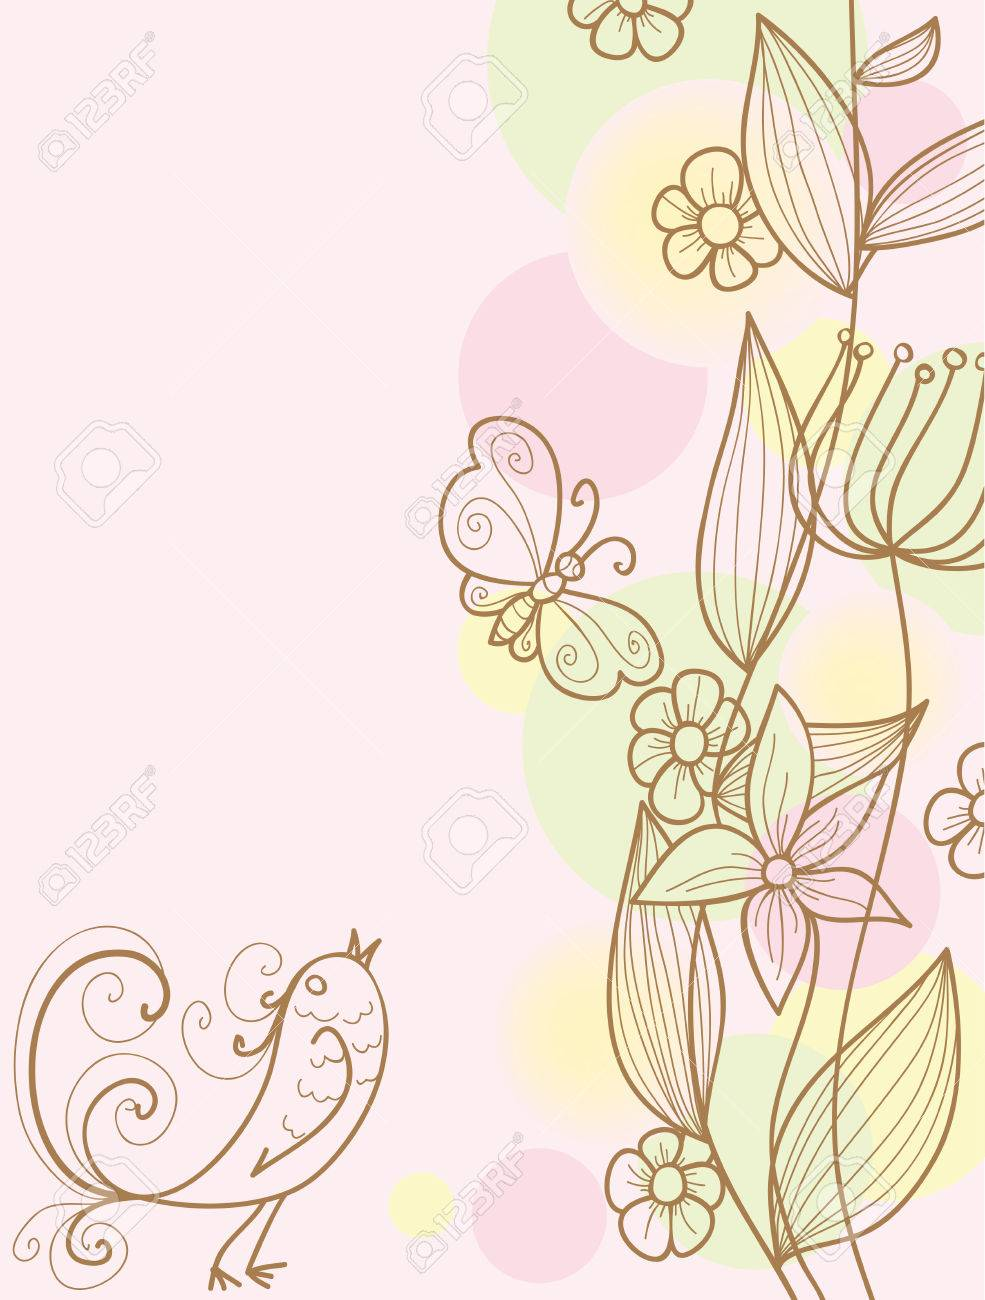 floral background with bird, butterfly and plants Stock Vector - 8017393